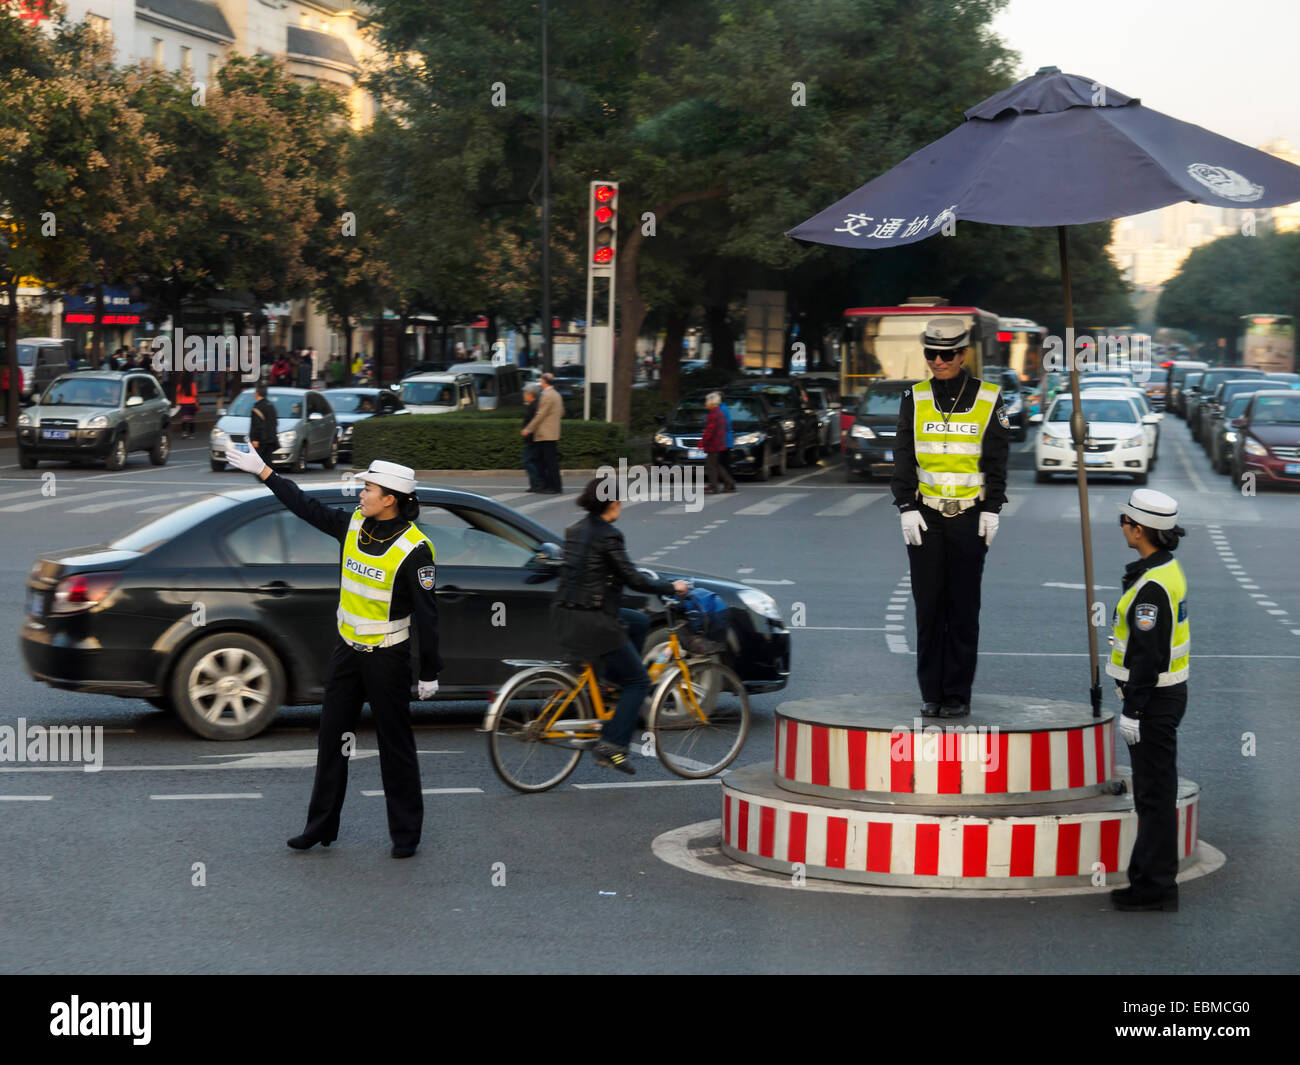 Traffic police directing cars in Xian, China - Stock Image